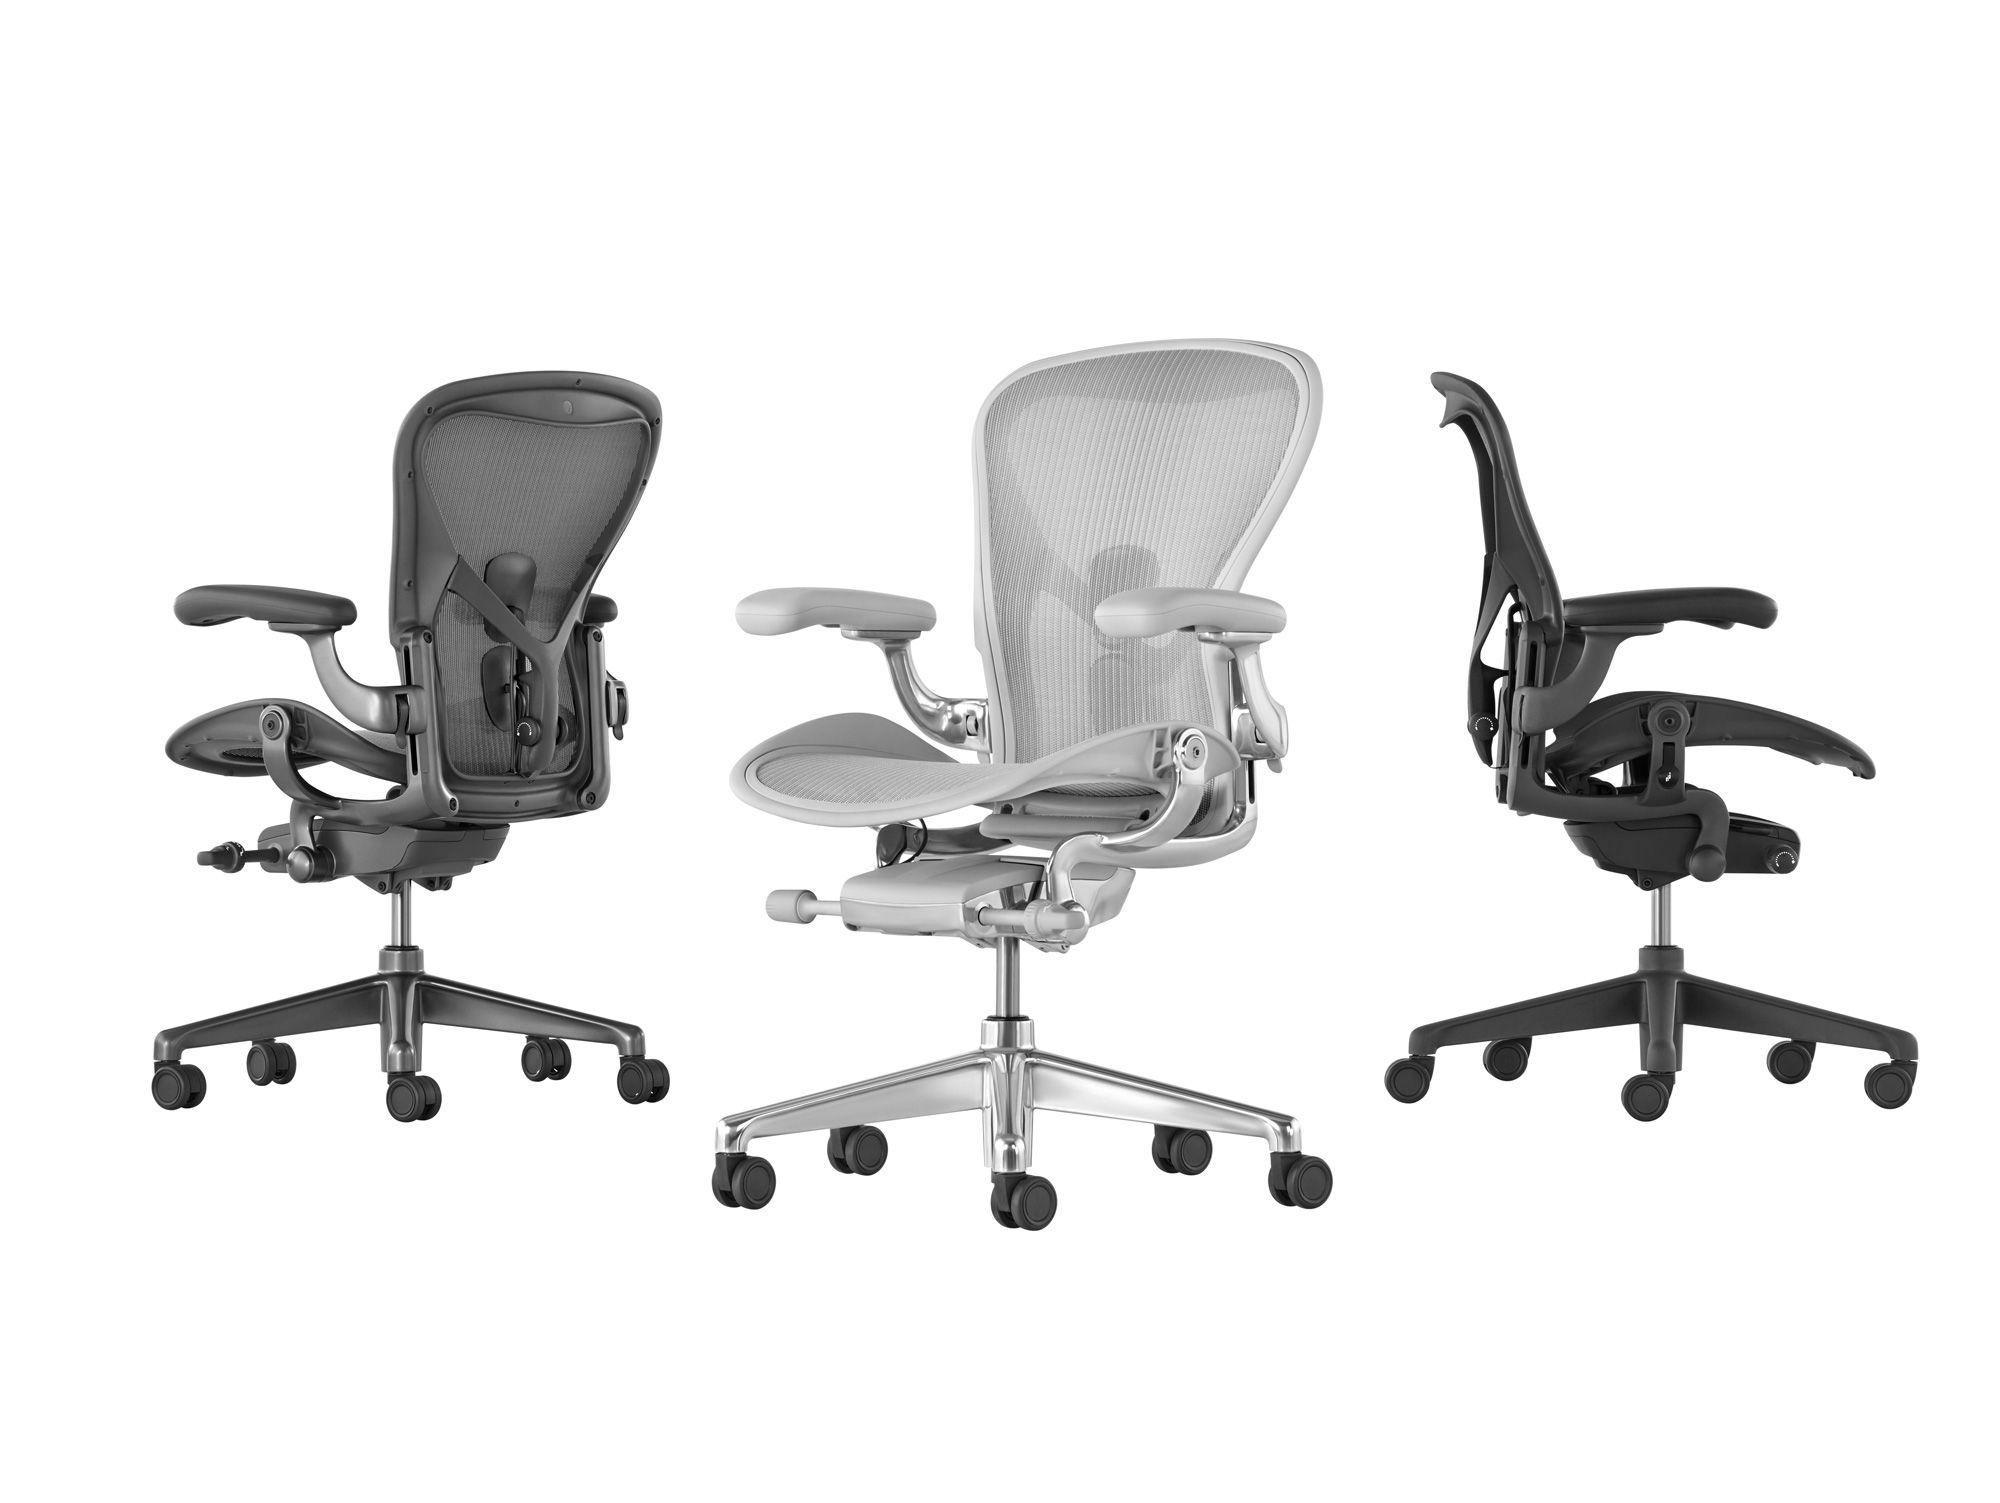 For the first time, Aeron is offered in three holistically